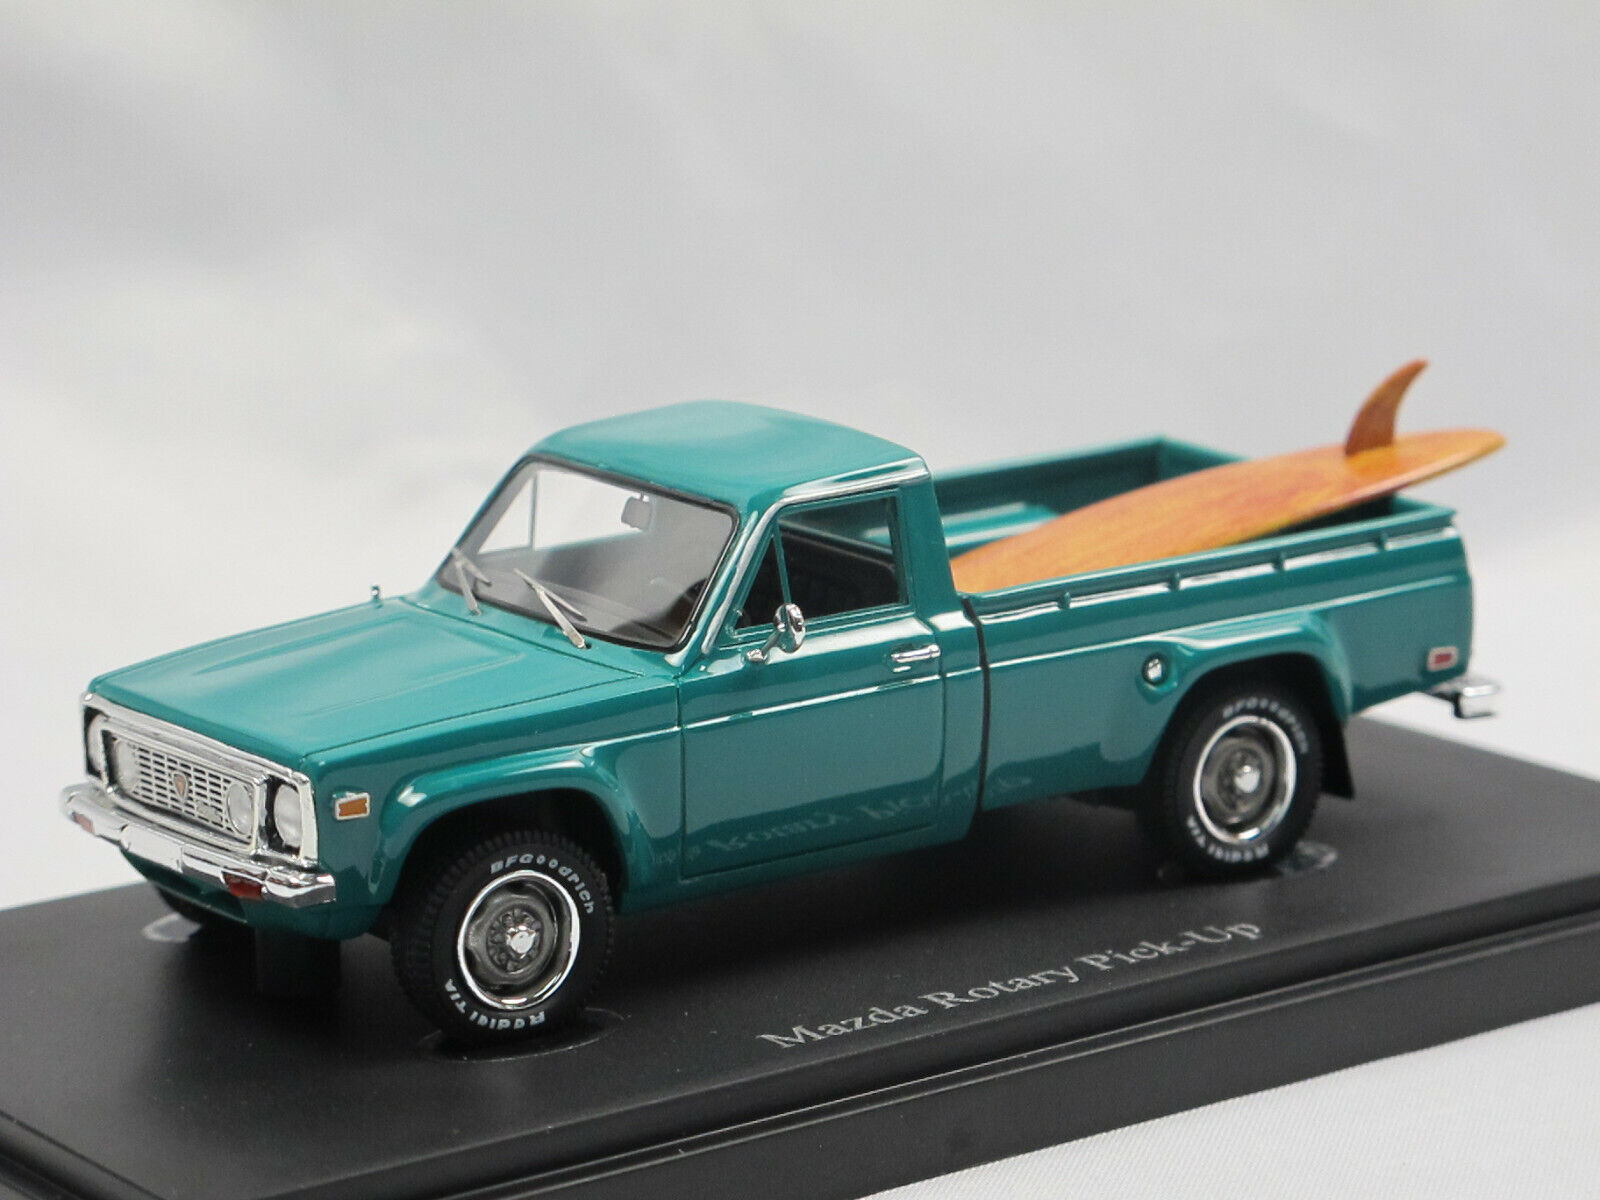 Autocult 08012 1974 Mazda Rotary Pickup REPU Turquoise Model Car 1 43